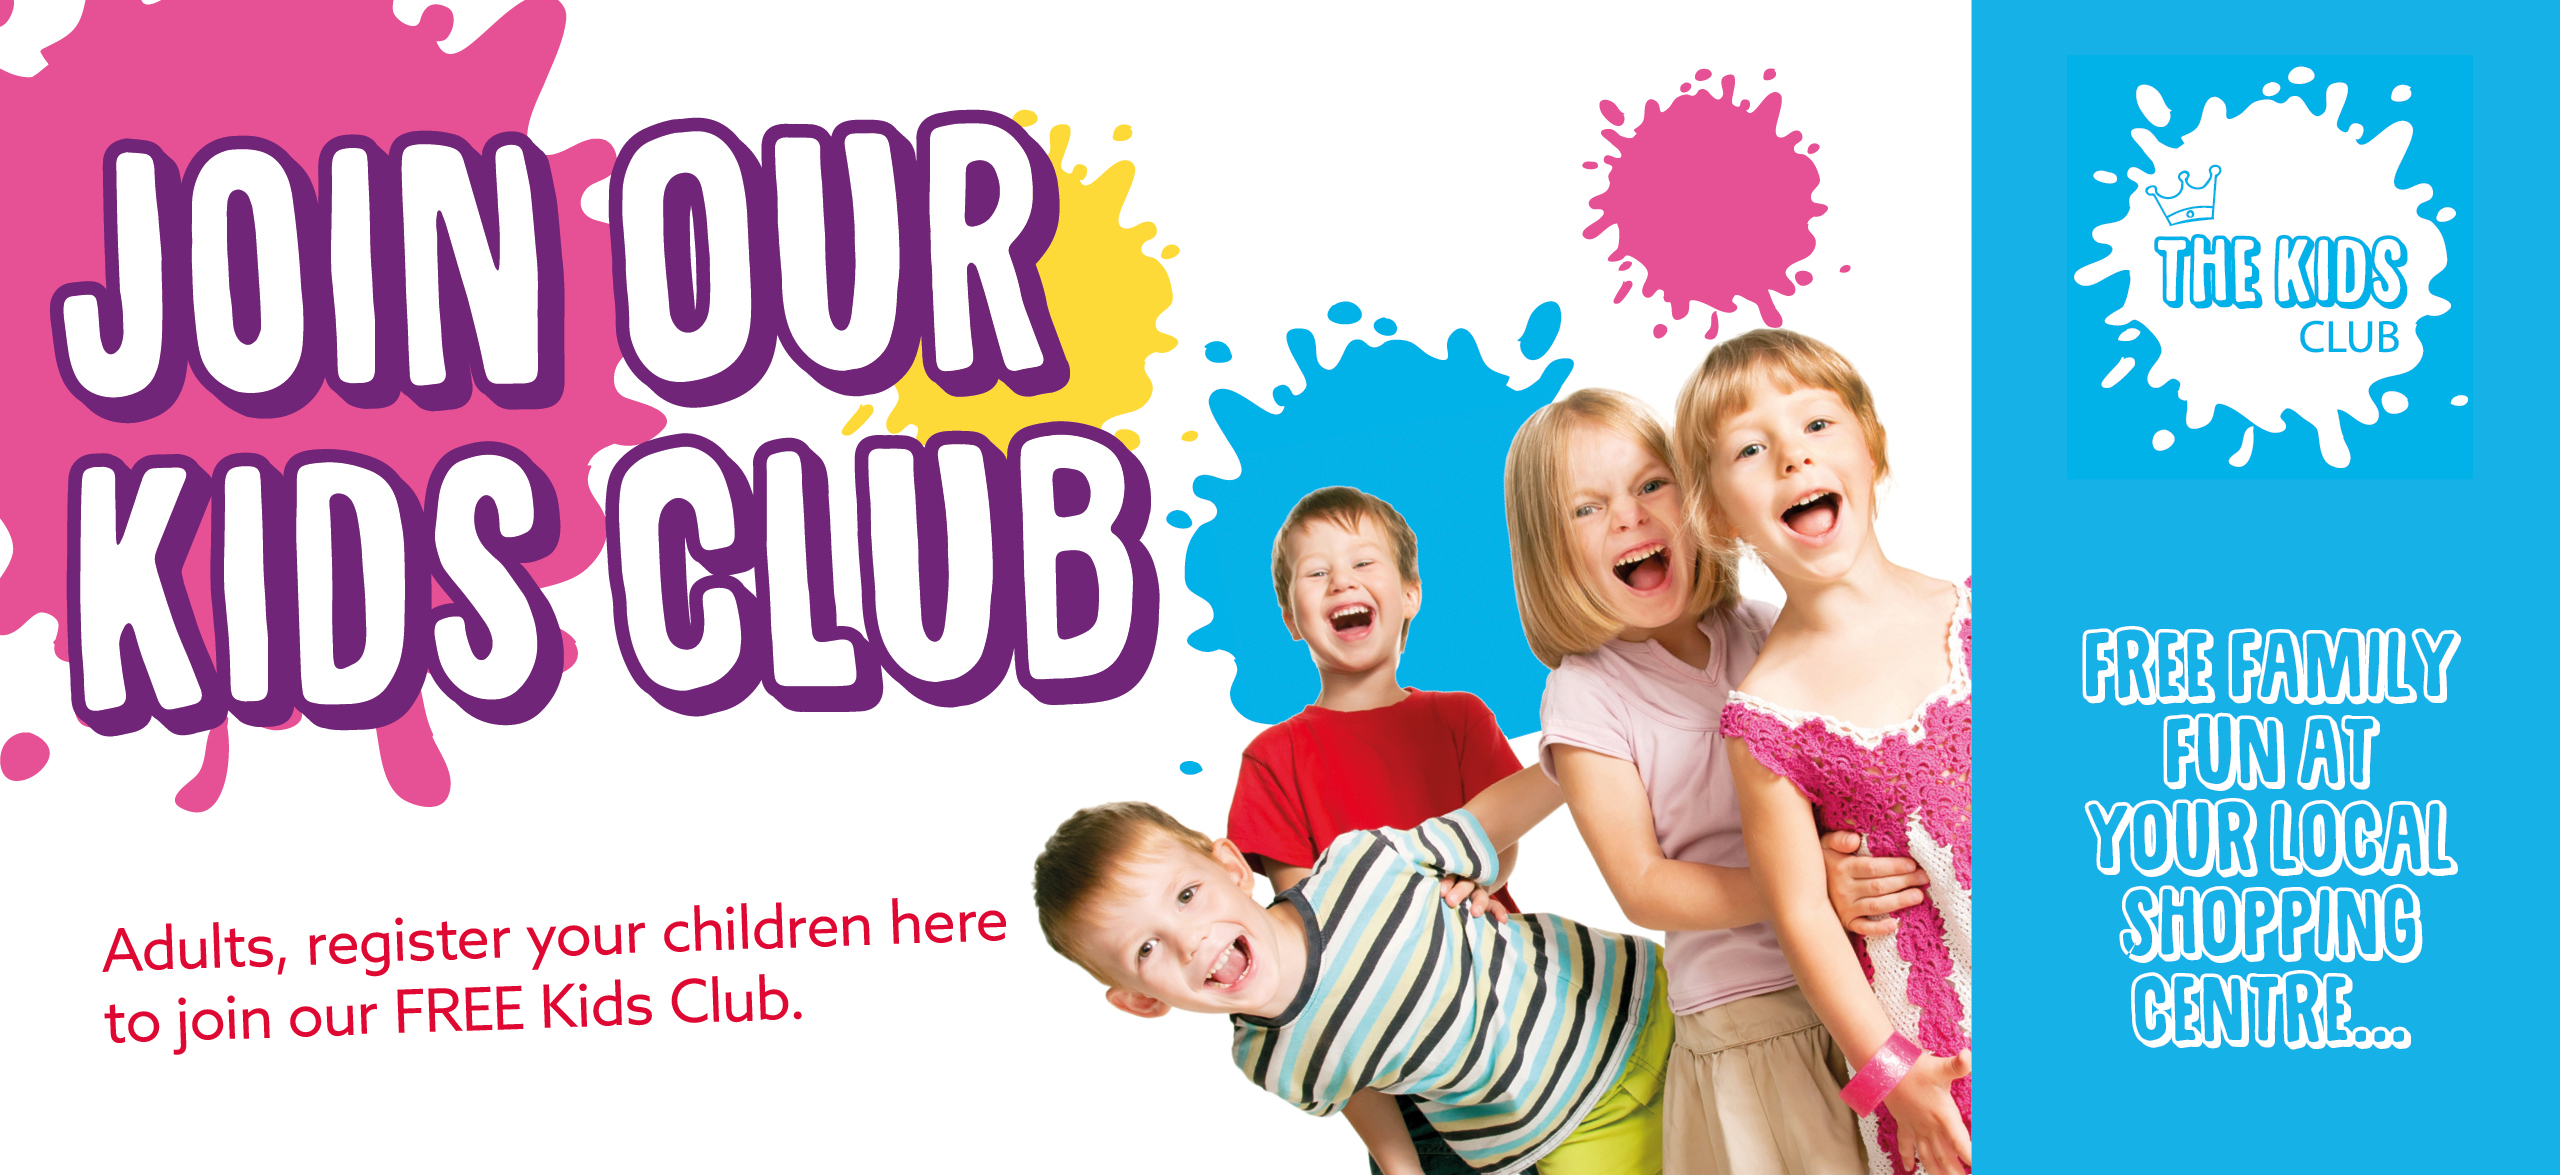 143149 AC Kids Club Web Rotator 2